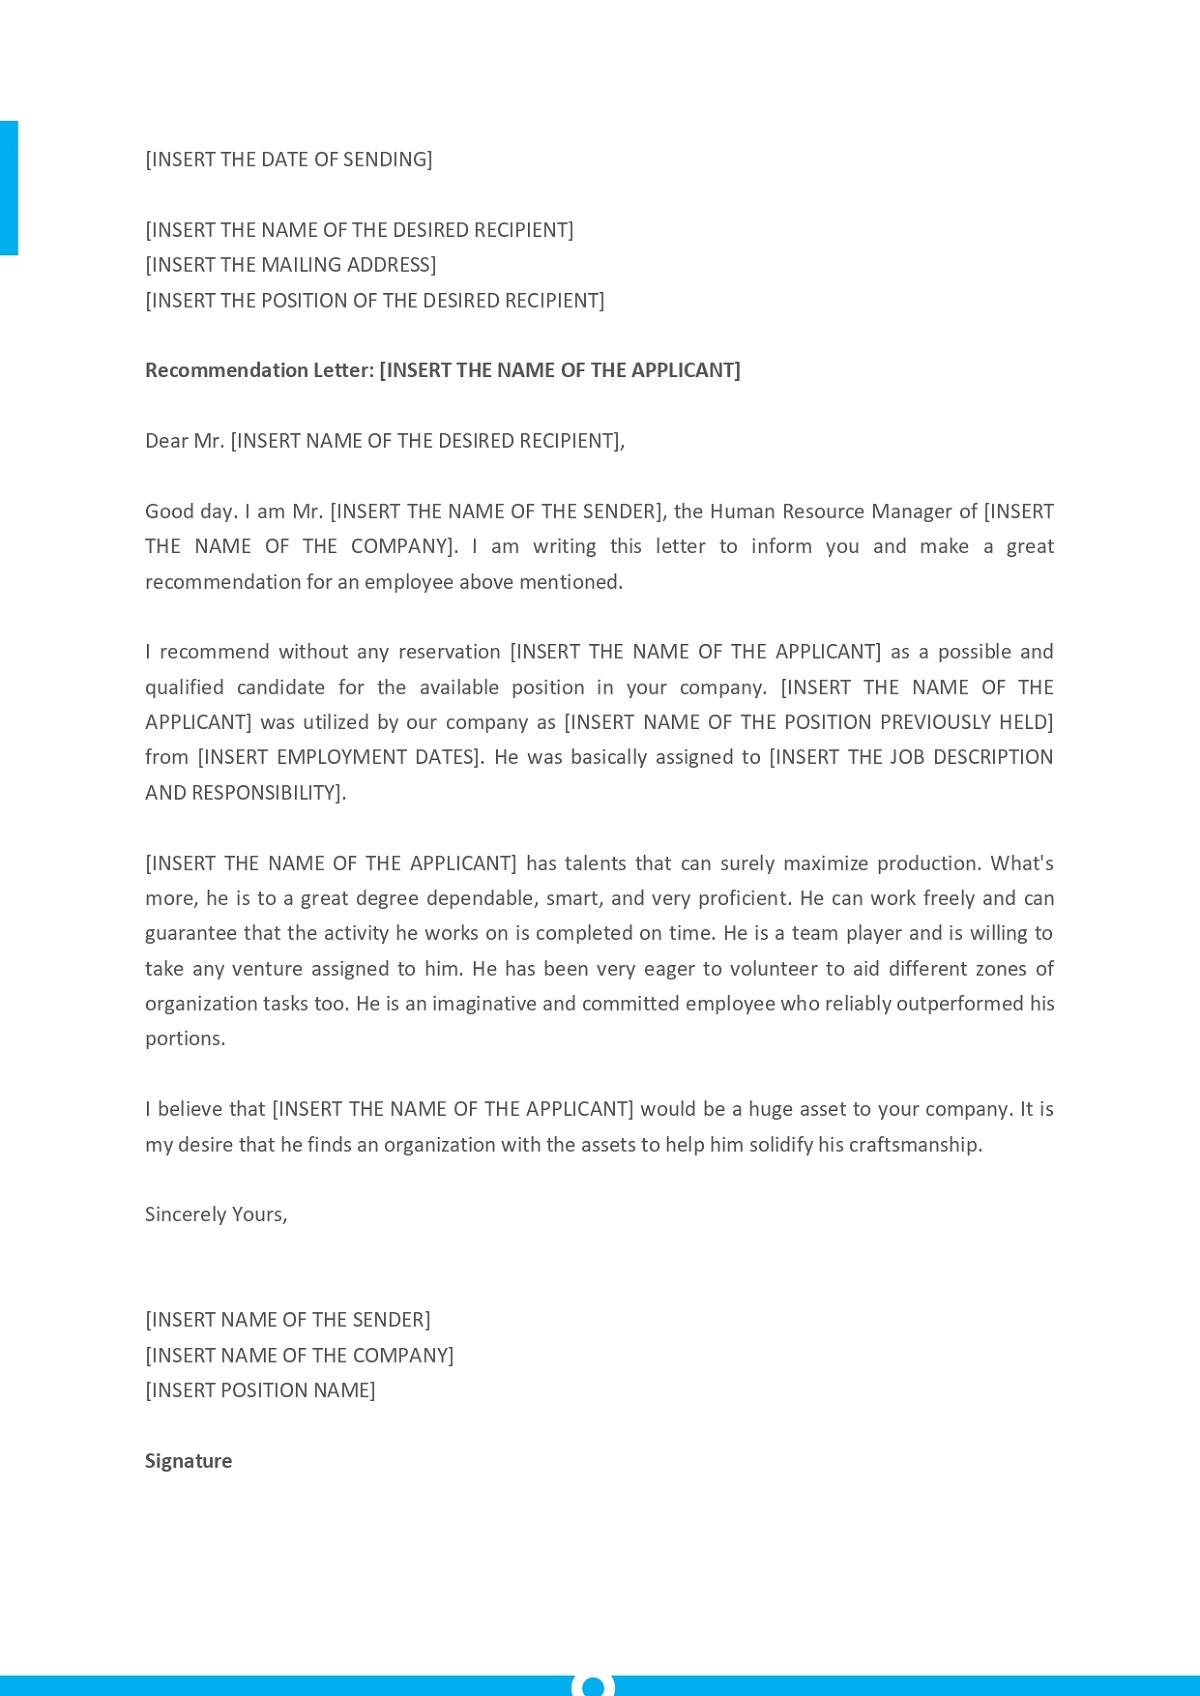 Letter Of Recommendation Template For Employee from www.geneevarojr.com